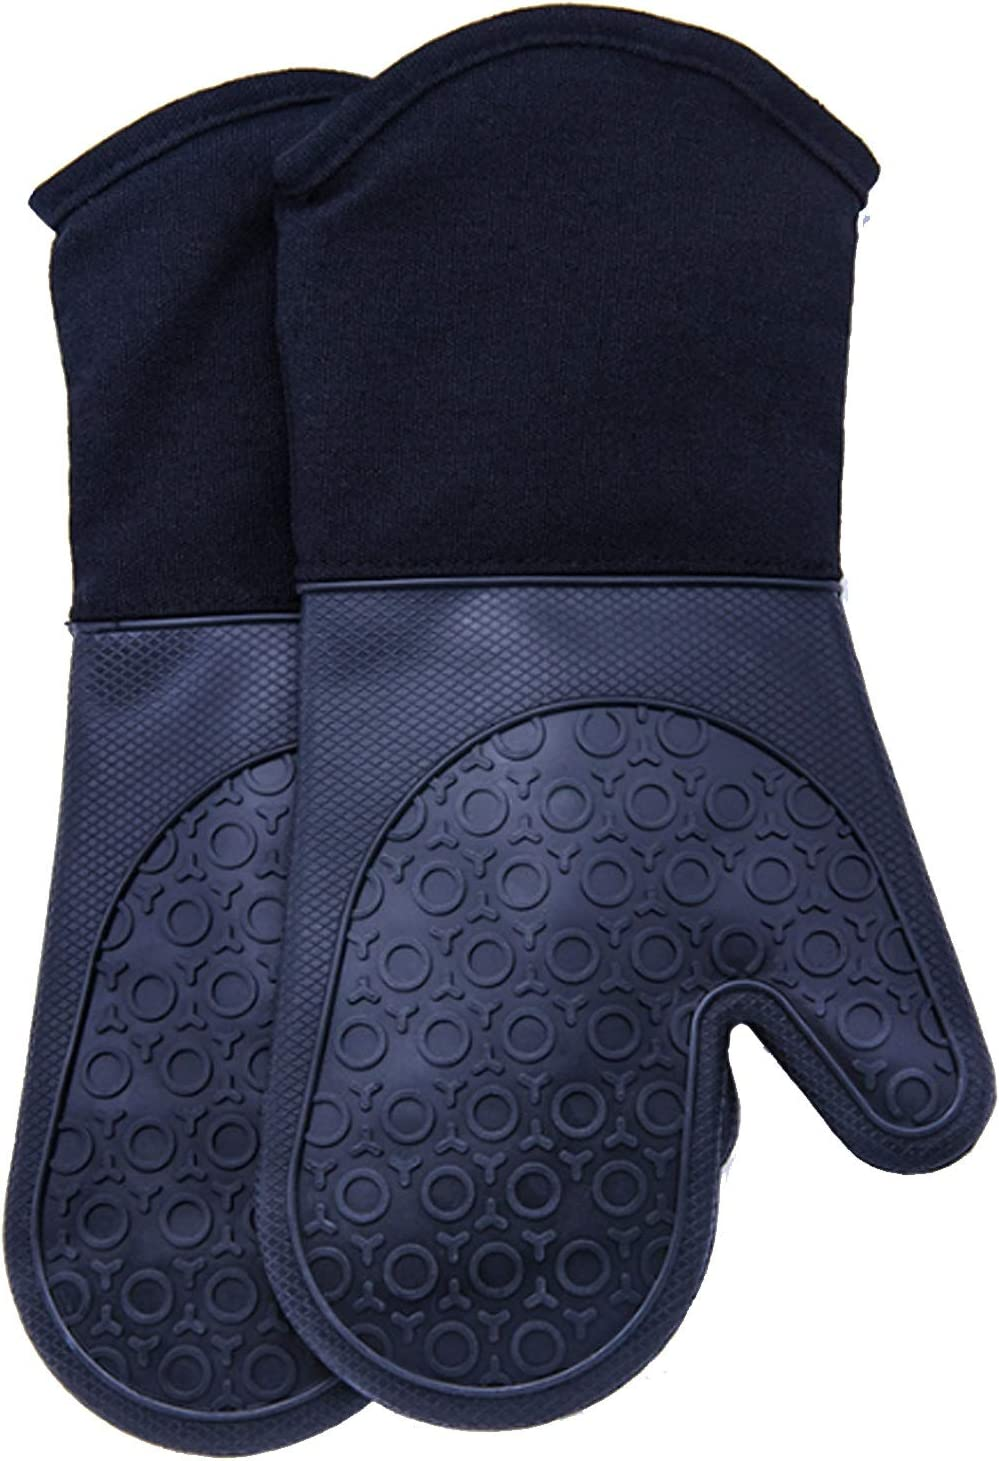 HAIMEI-US Silicone Oven Mitts with Quilted Cotton Lining - Professional Heat Immune Pot Holders Gloves (Color : Black, UnitCount : One)